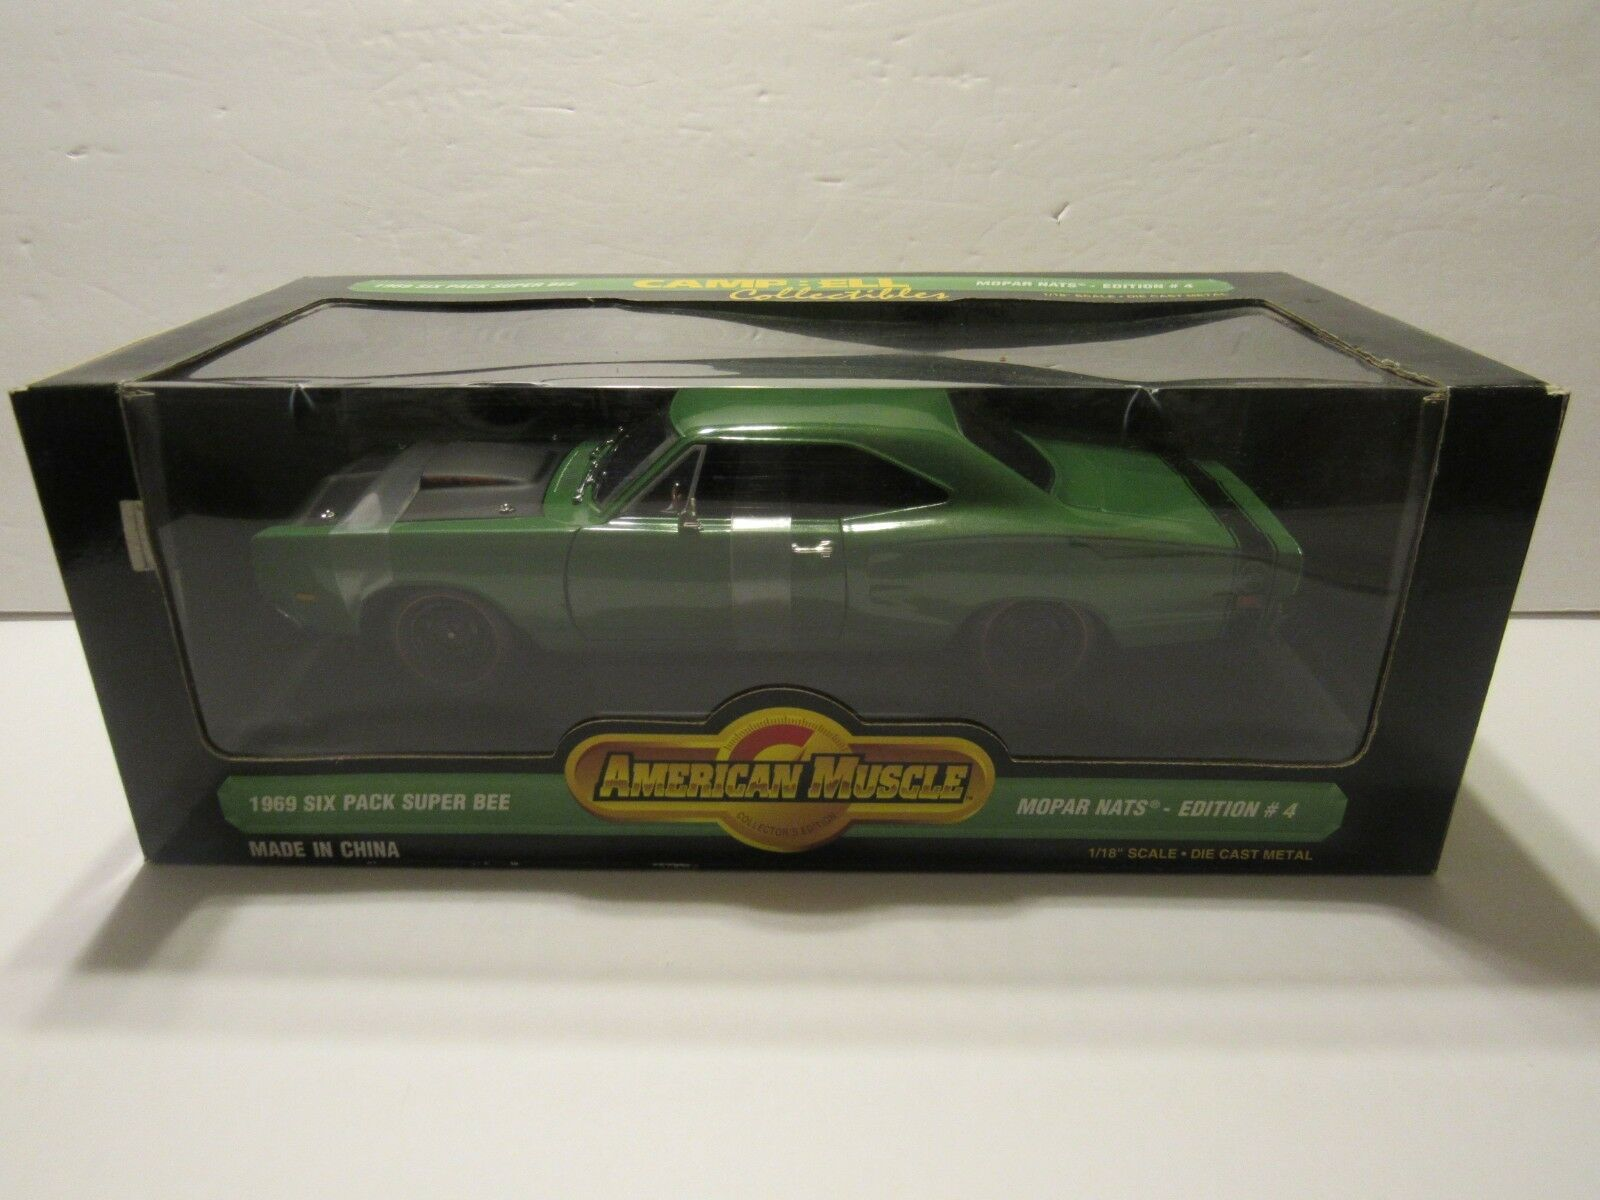 New in Box Campbell Collectibles MOPAR ressortissants édition 1997  4 69 Super B